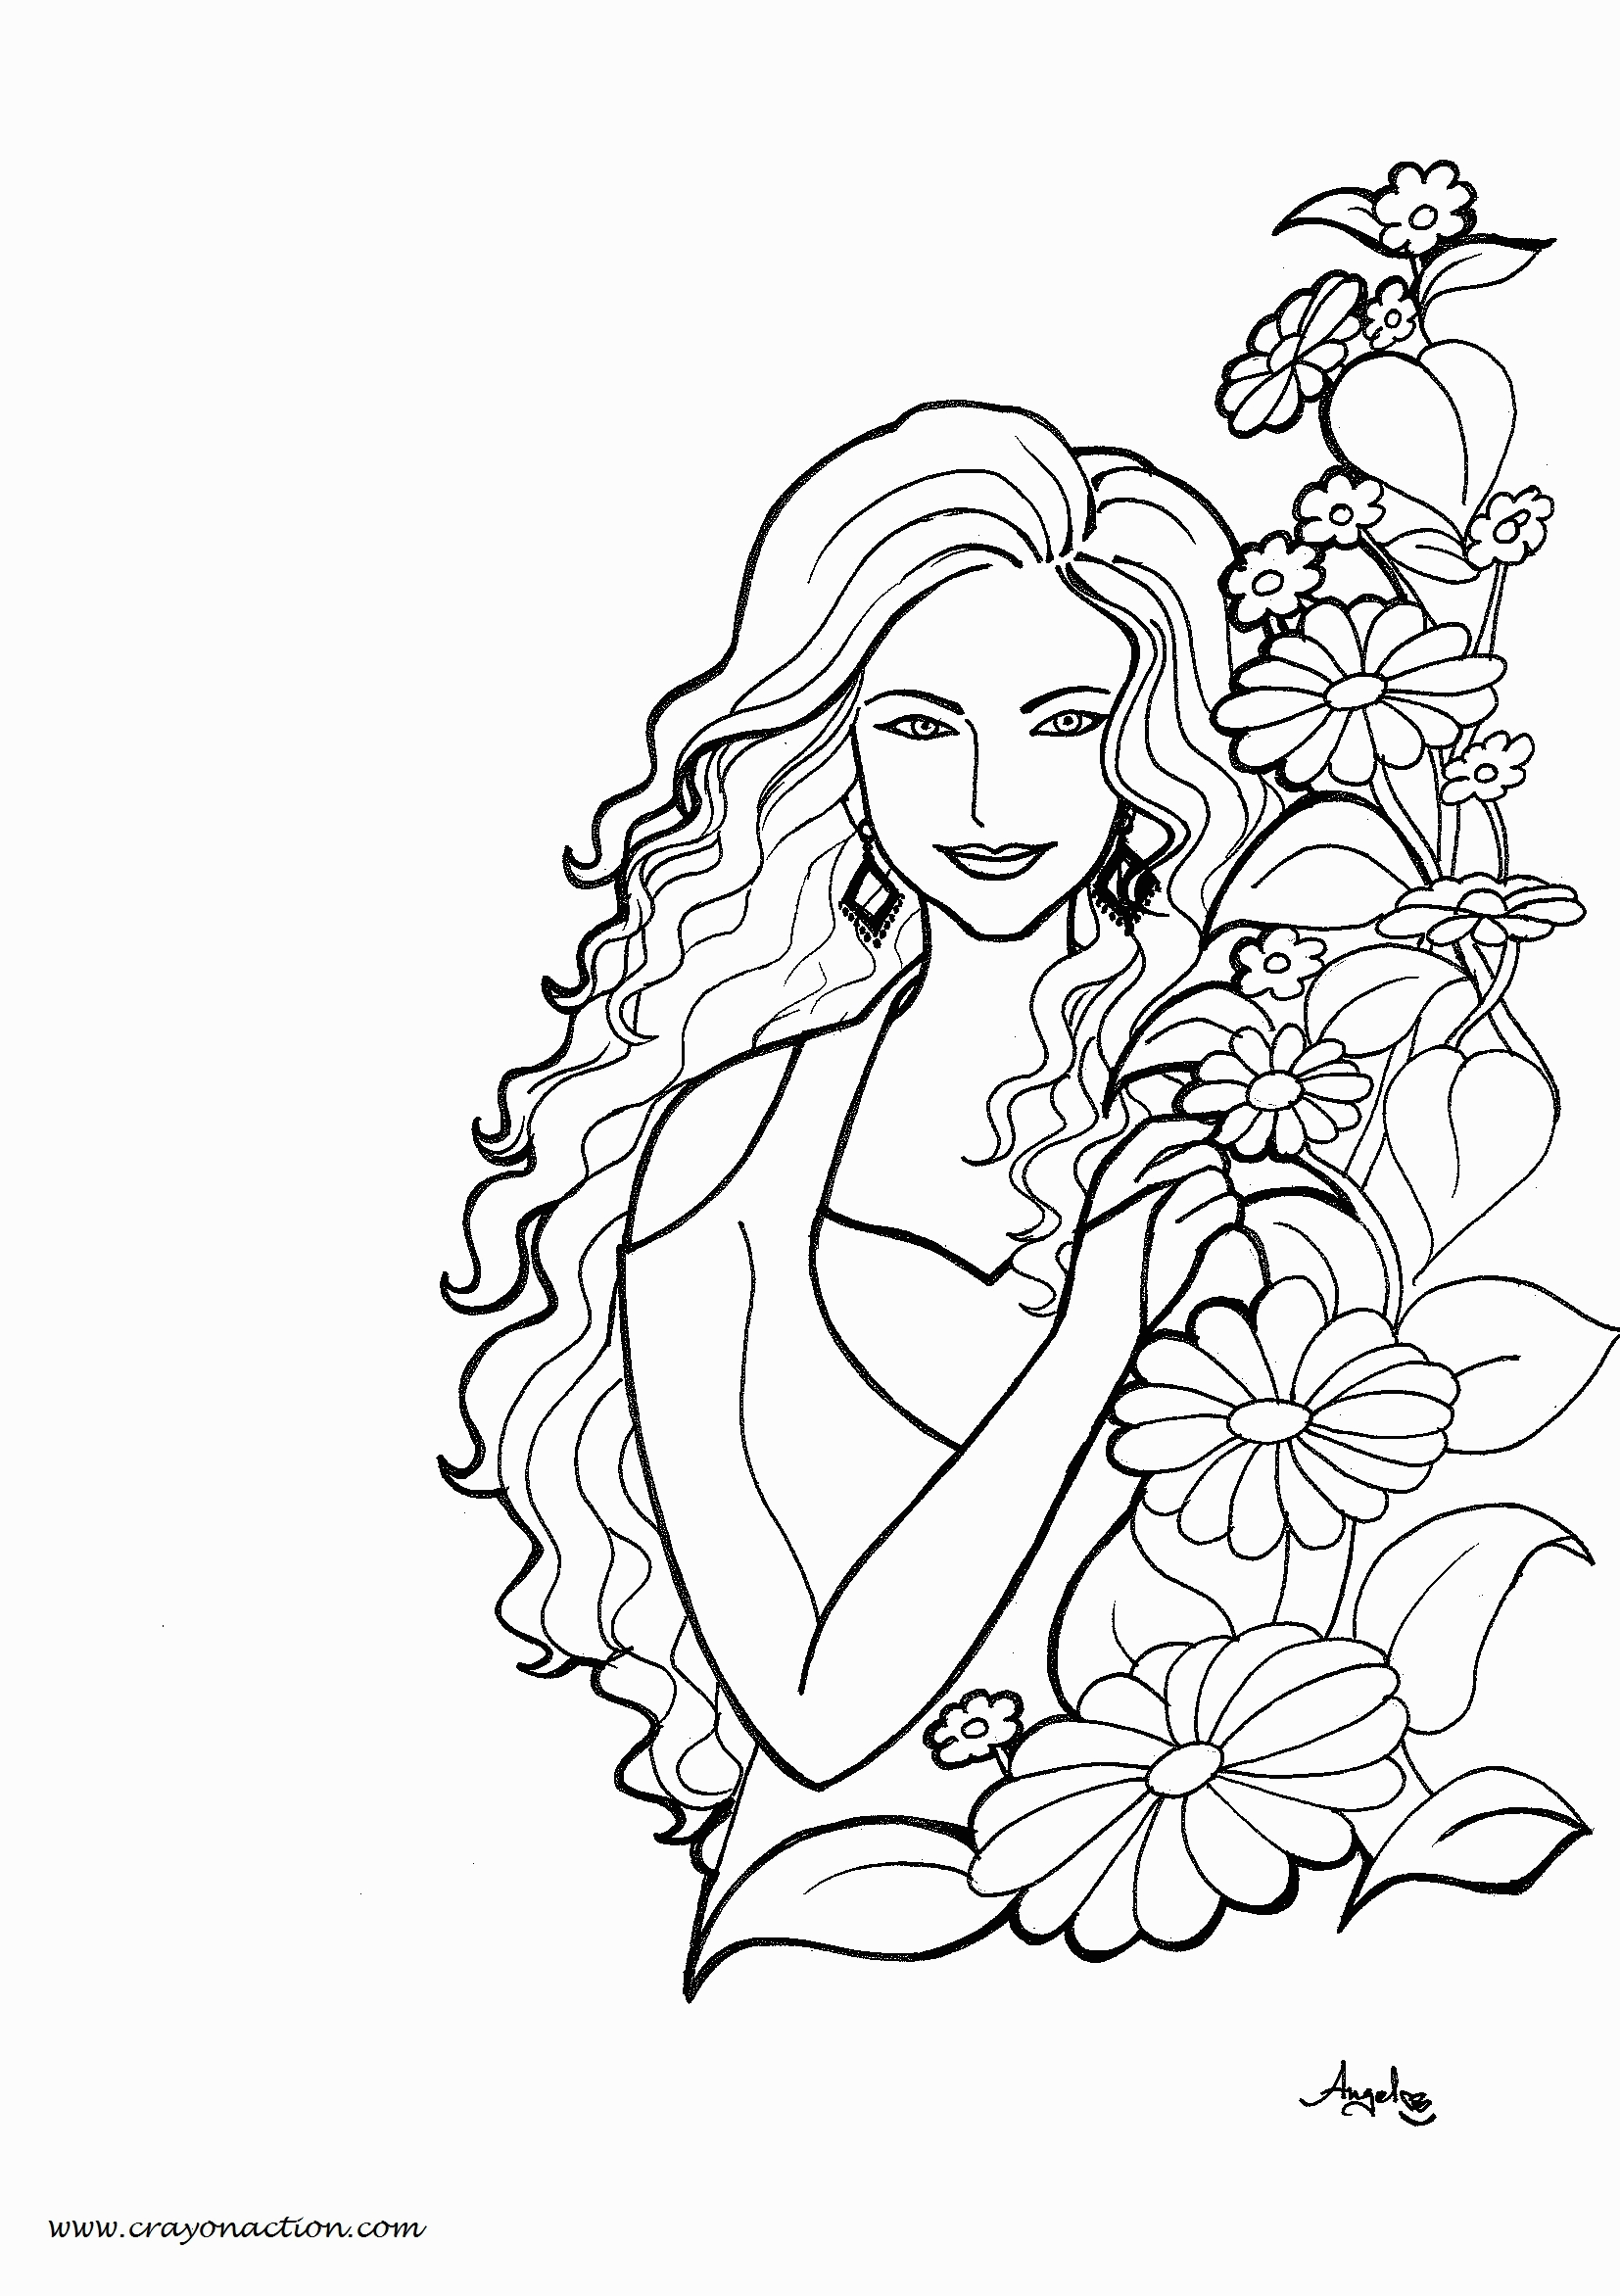 woman coloring page - pretty girl coloring page